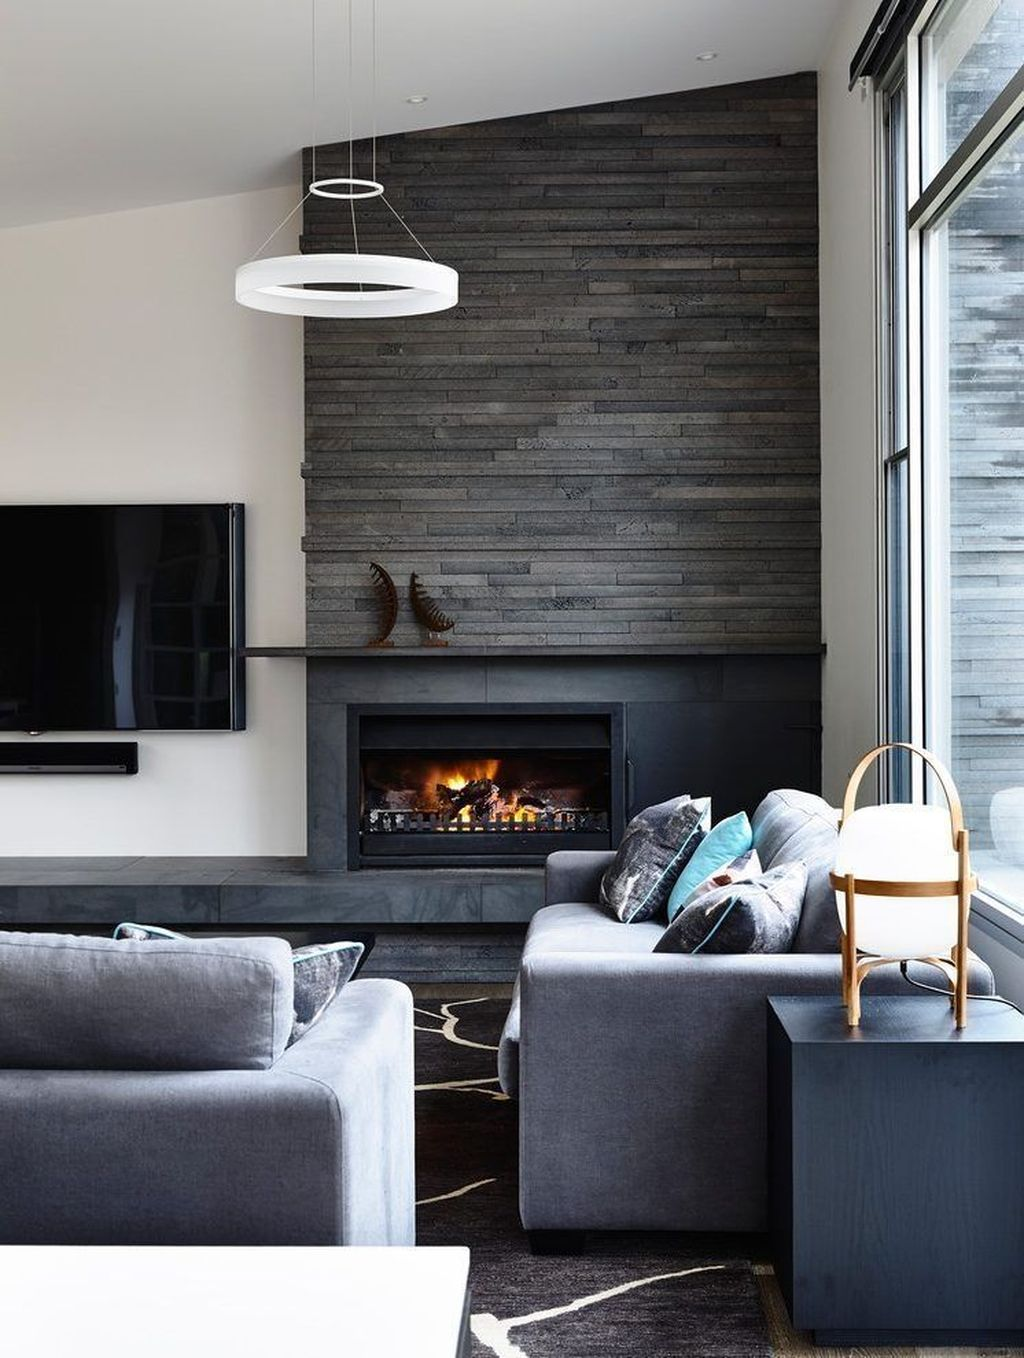 Awesome Living Room Design Ideas With Fireplace 32